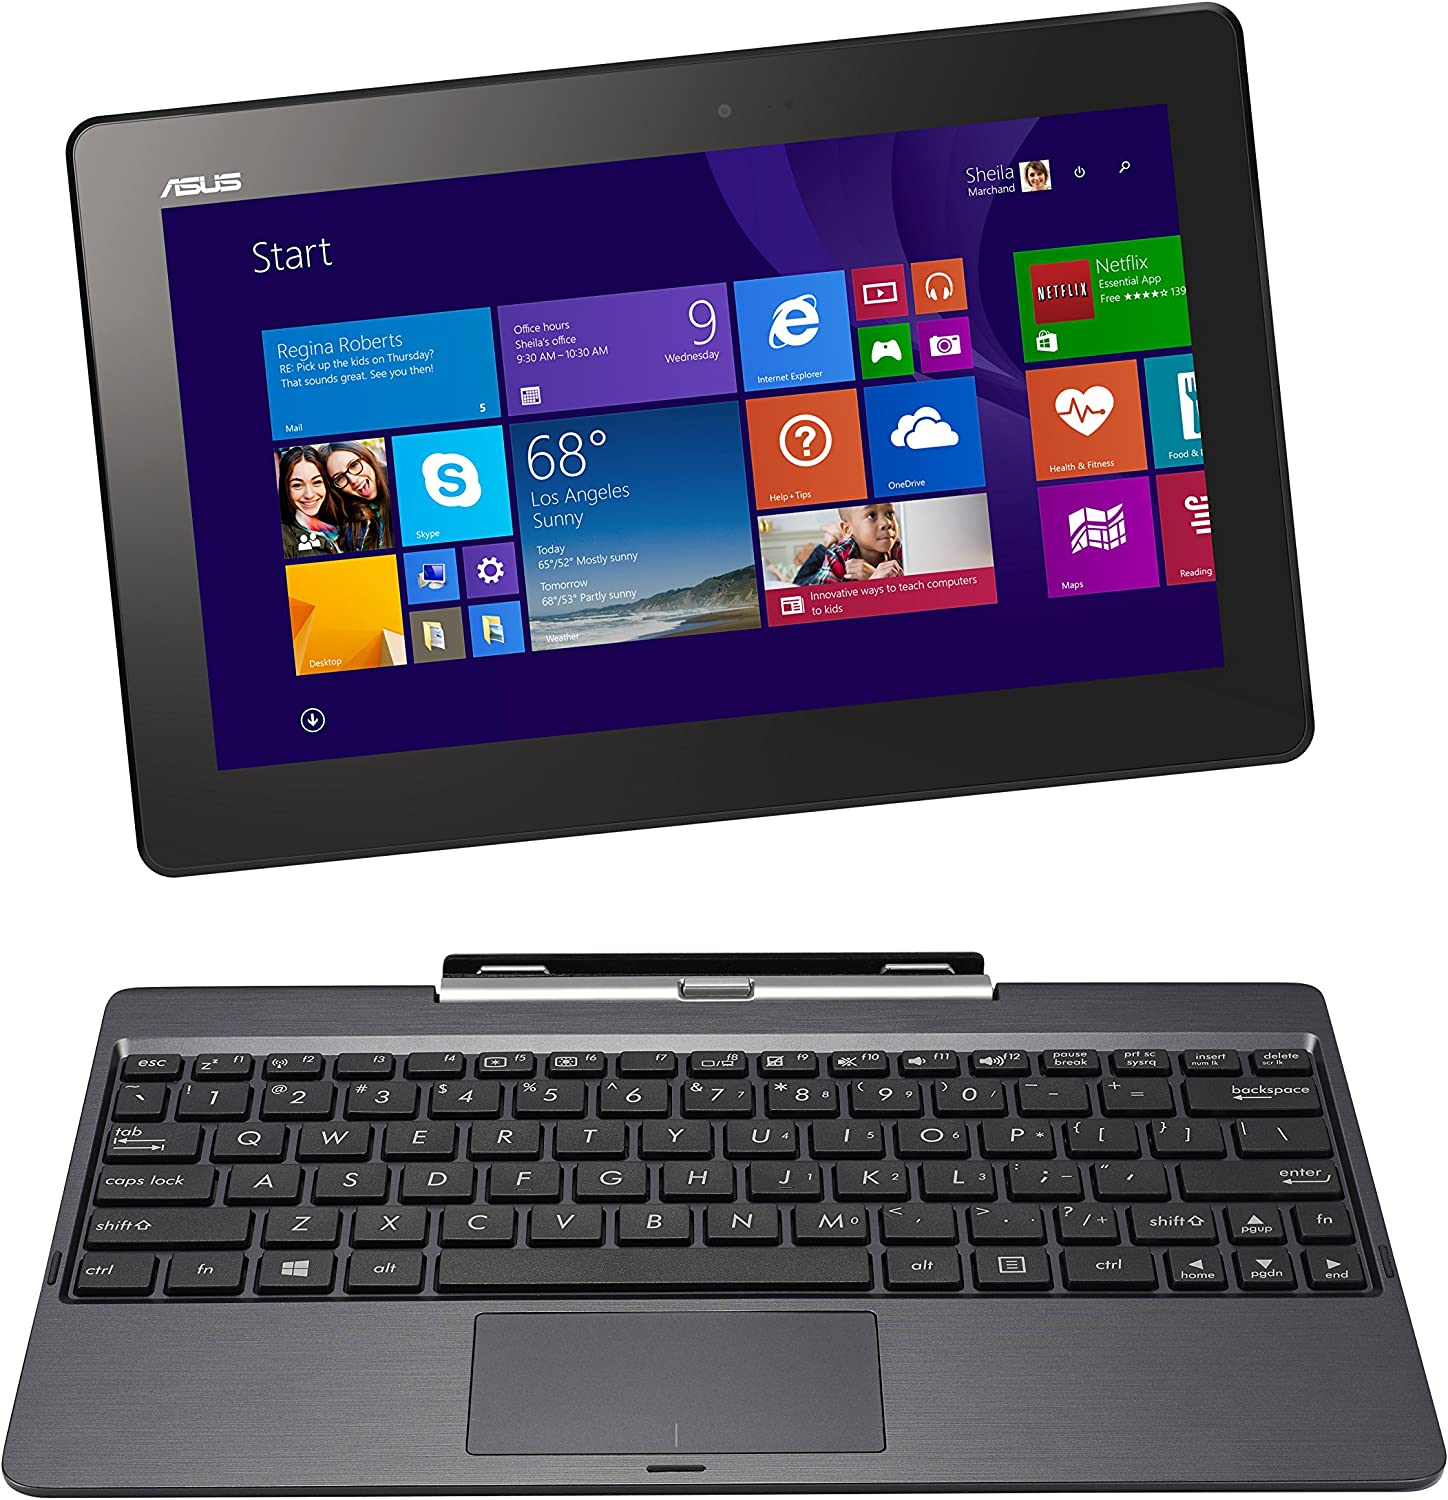 "ASUS Transformer Book T100TAF-B1-BF Laptop (Windows 8.1, Intel Quad-Core Z3735 1.33 GHz, 10.1"" LED-lit Screen, Storage: 32 GB, RAM: 2 GB) Grey"